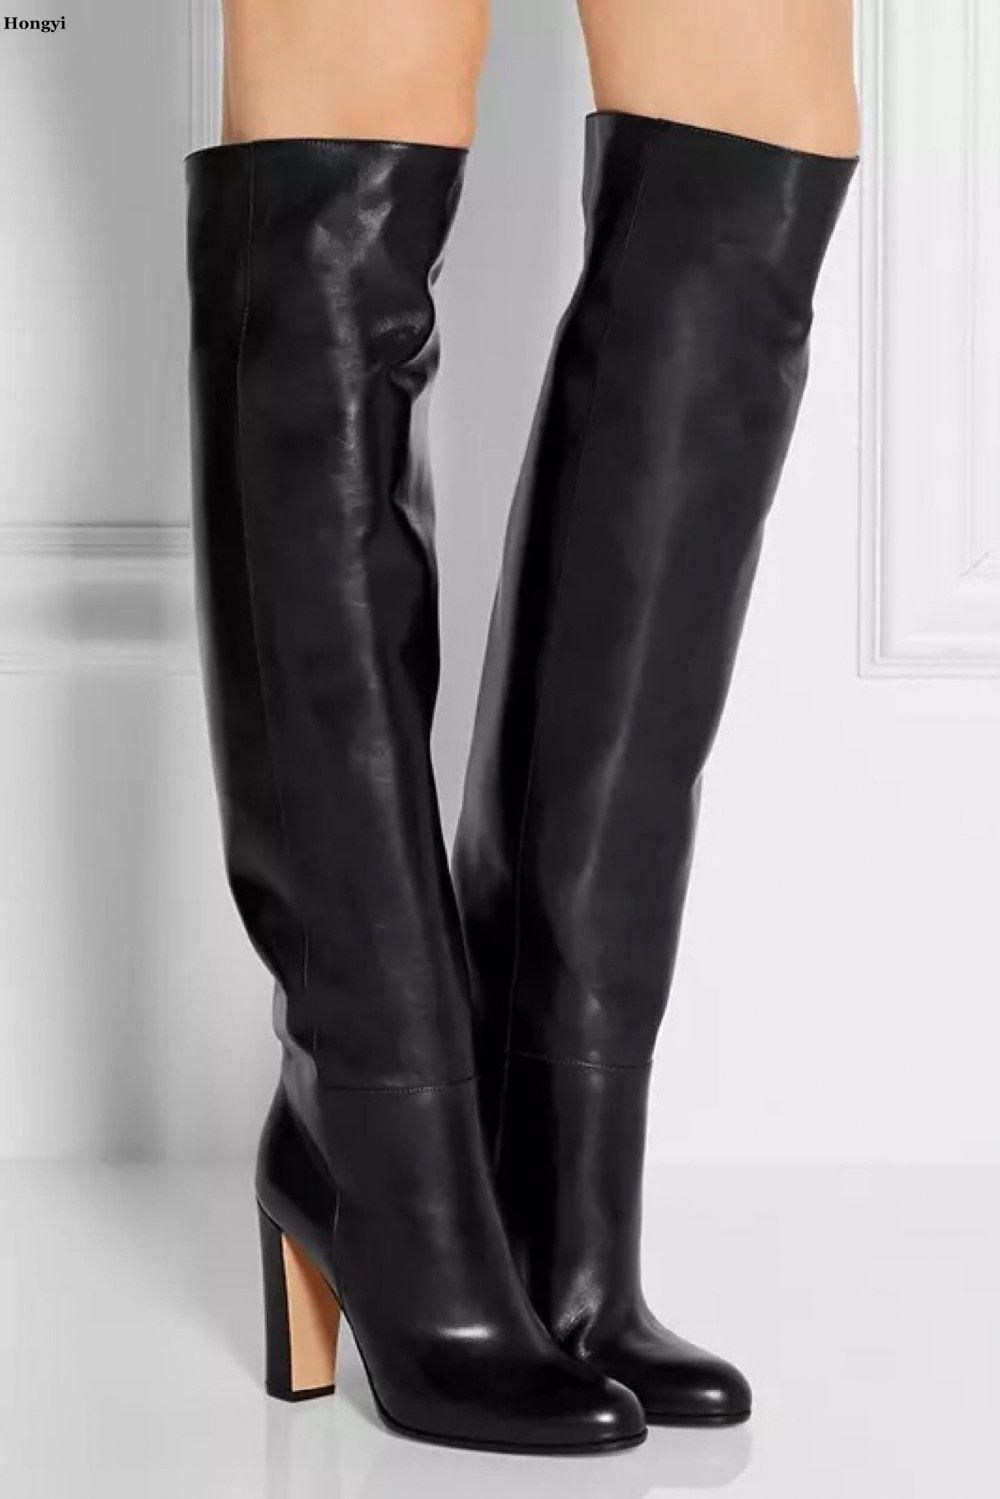 e035349c44b Hongyi Autumn Winter Newest Black Boots Woman round toe over the knee boots  thick heels riding